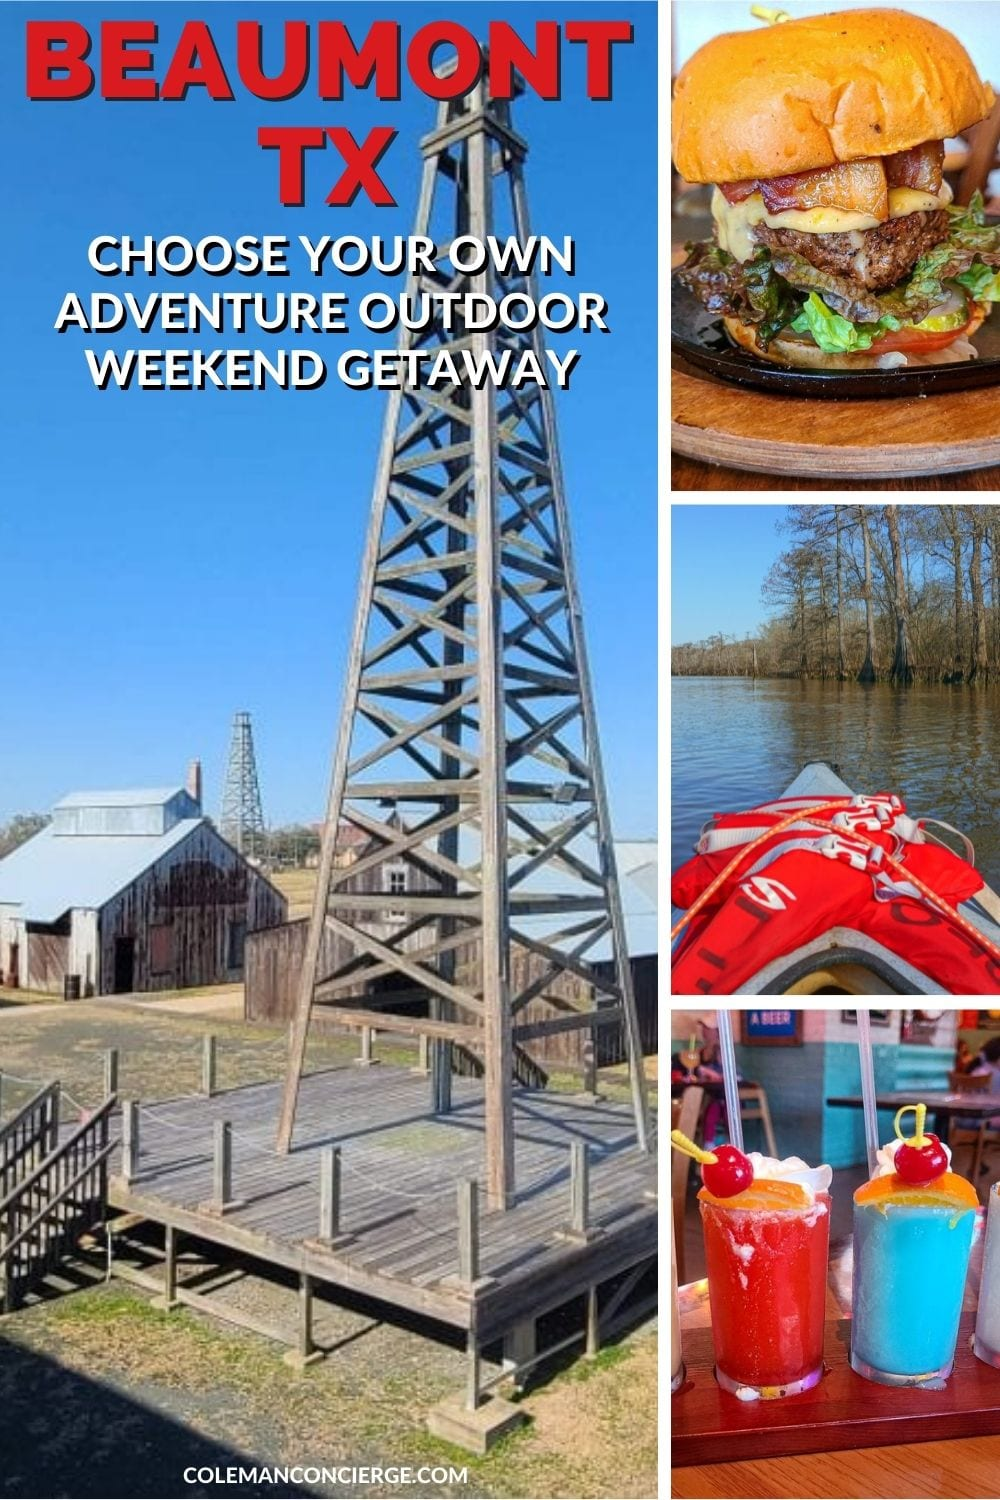 Food and sights of Beaumont texas